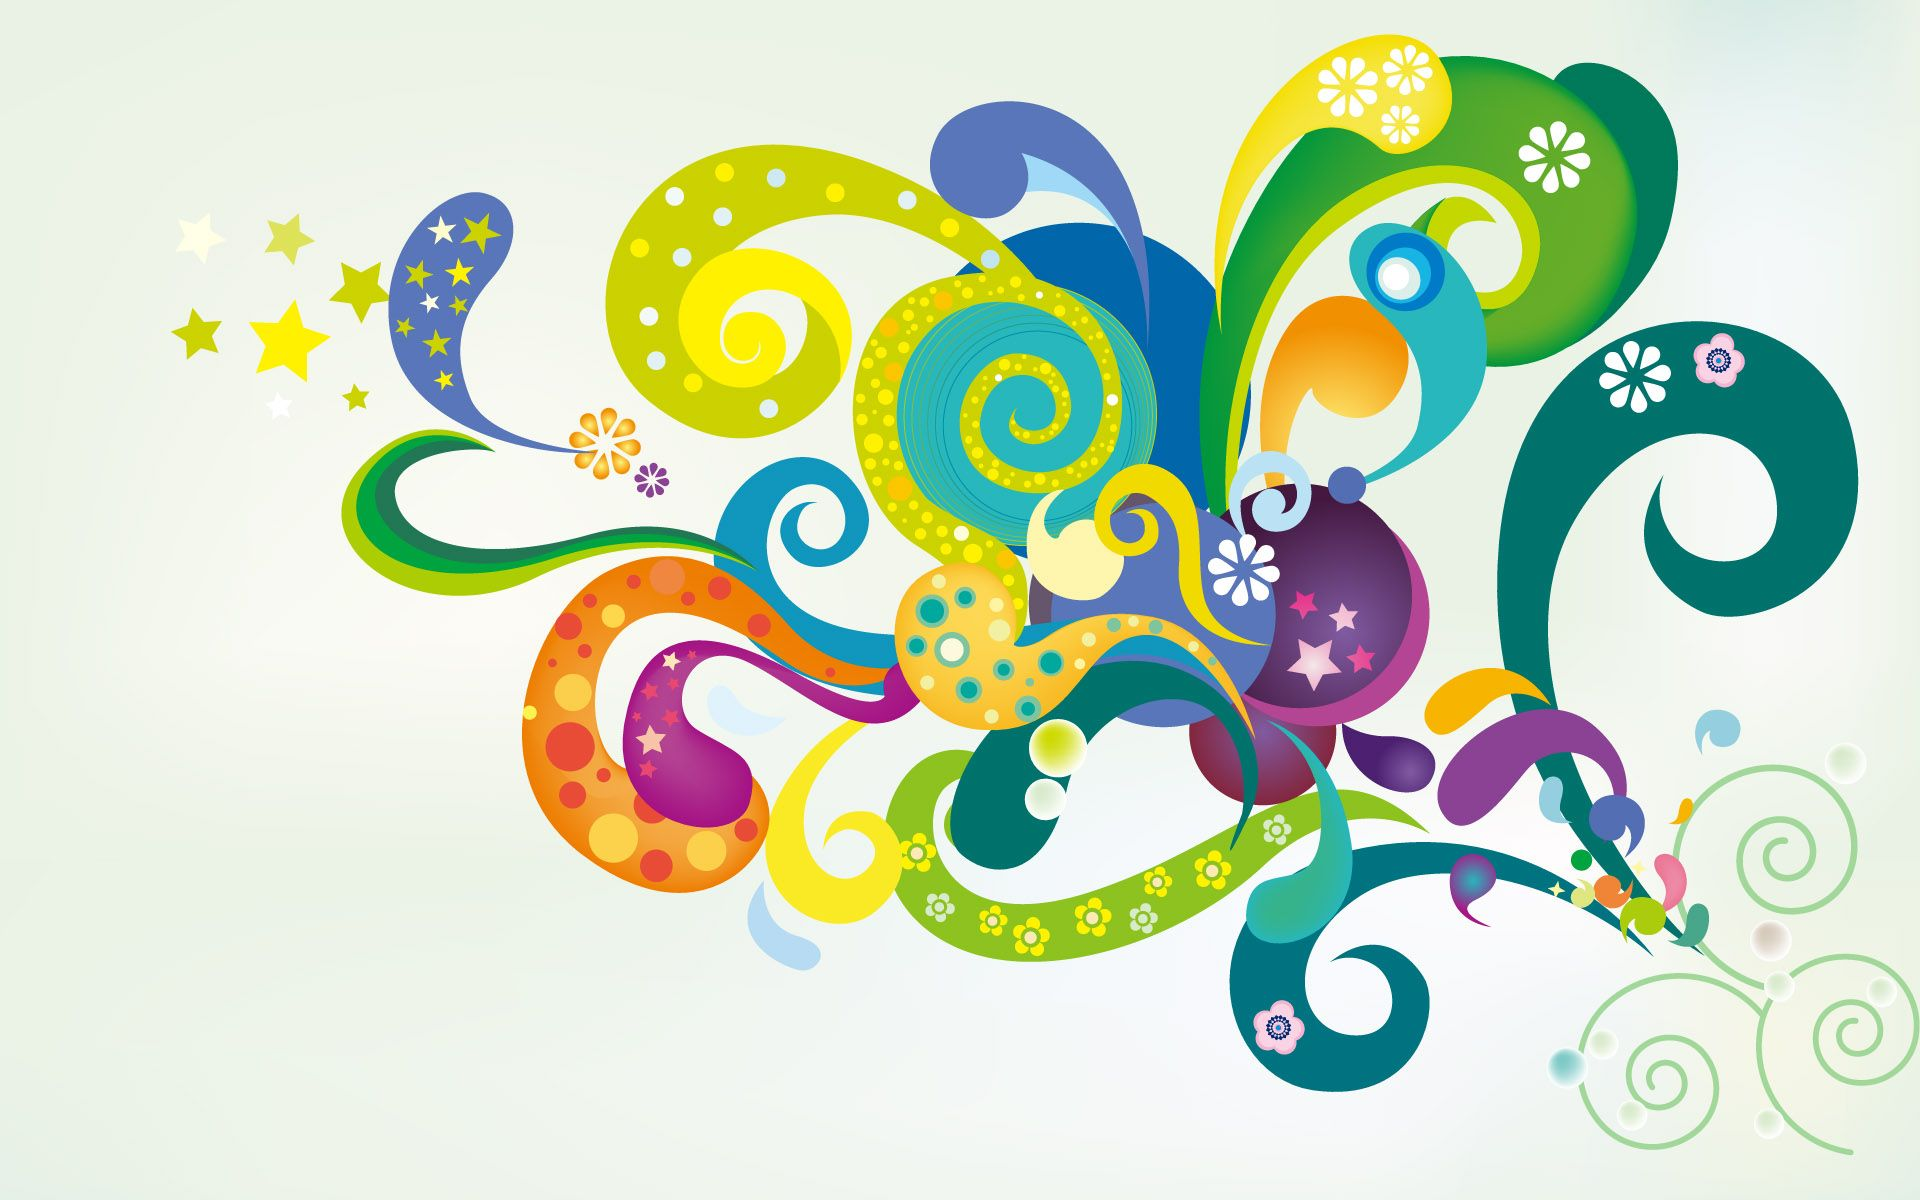 Design Images vector | vector & designs wallpapers, art, images, hd wallpapers